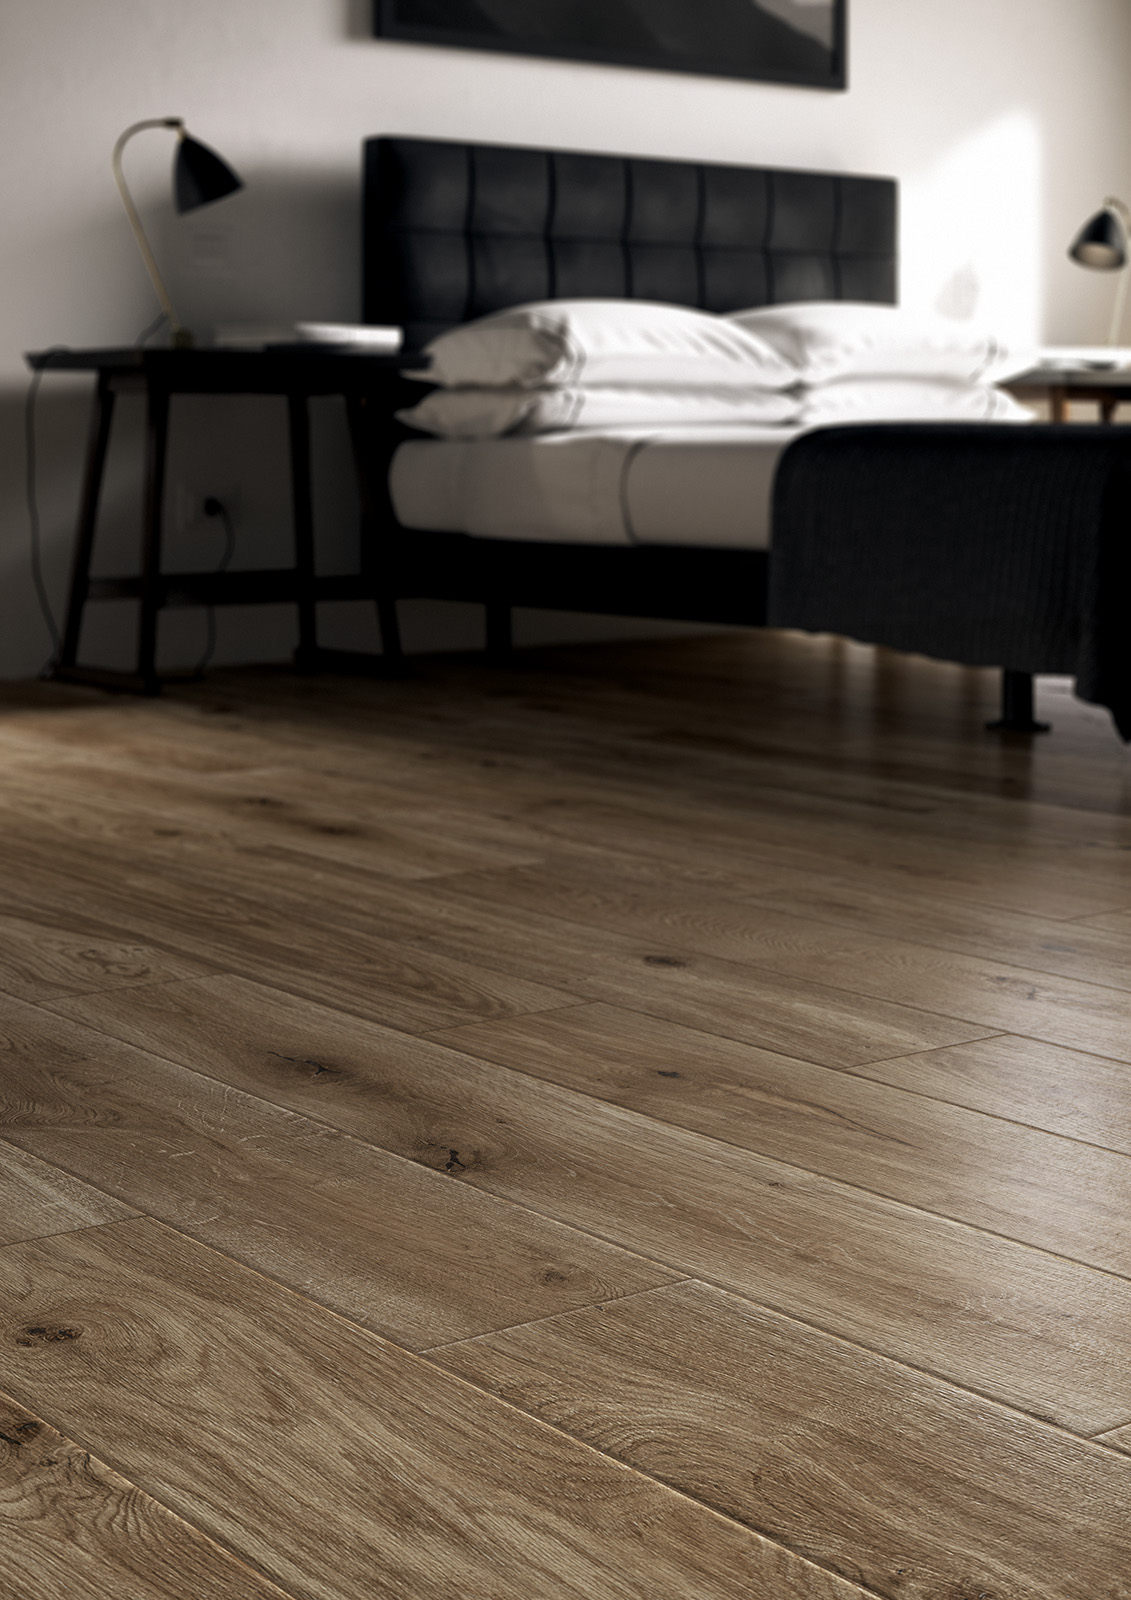 Treverkever hard wood effect stoneware flooring marazzi for Marazzi tile